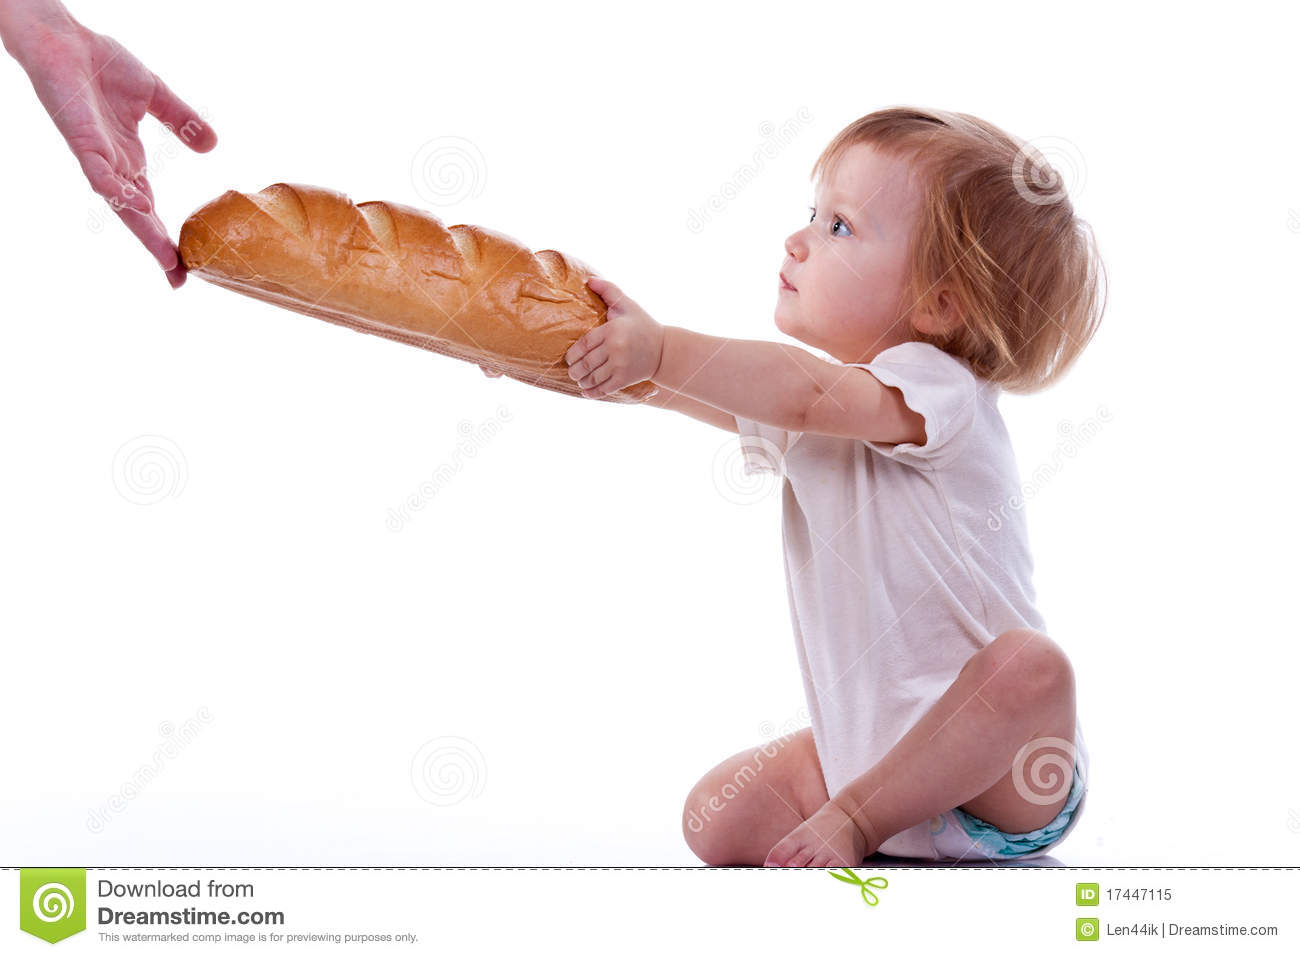 Baby giving out a loaf of bread royalty free stock photo image